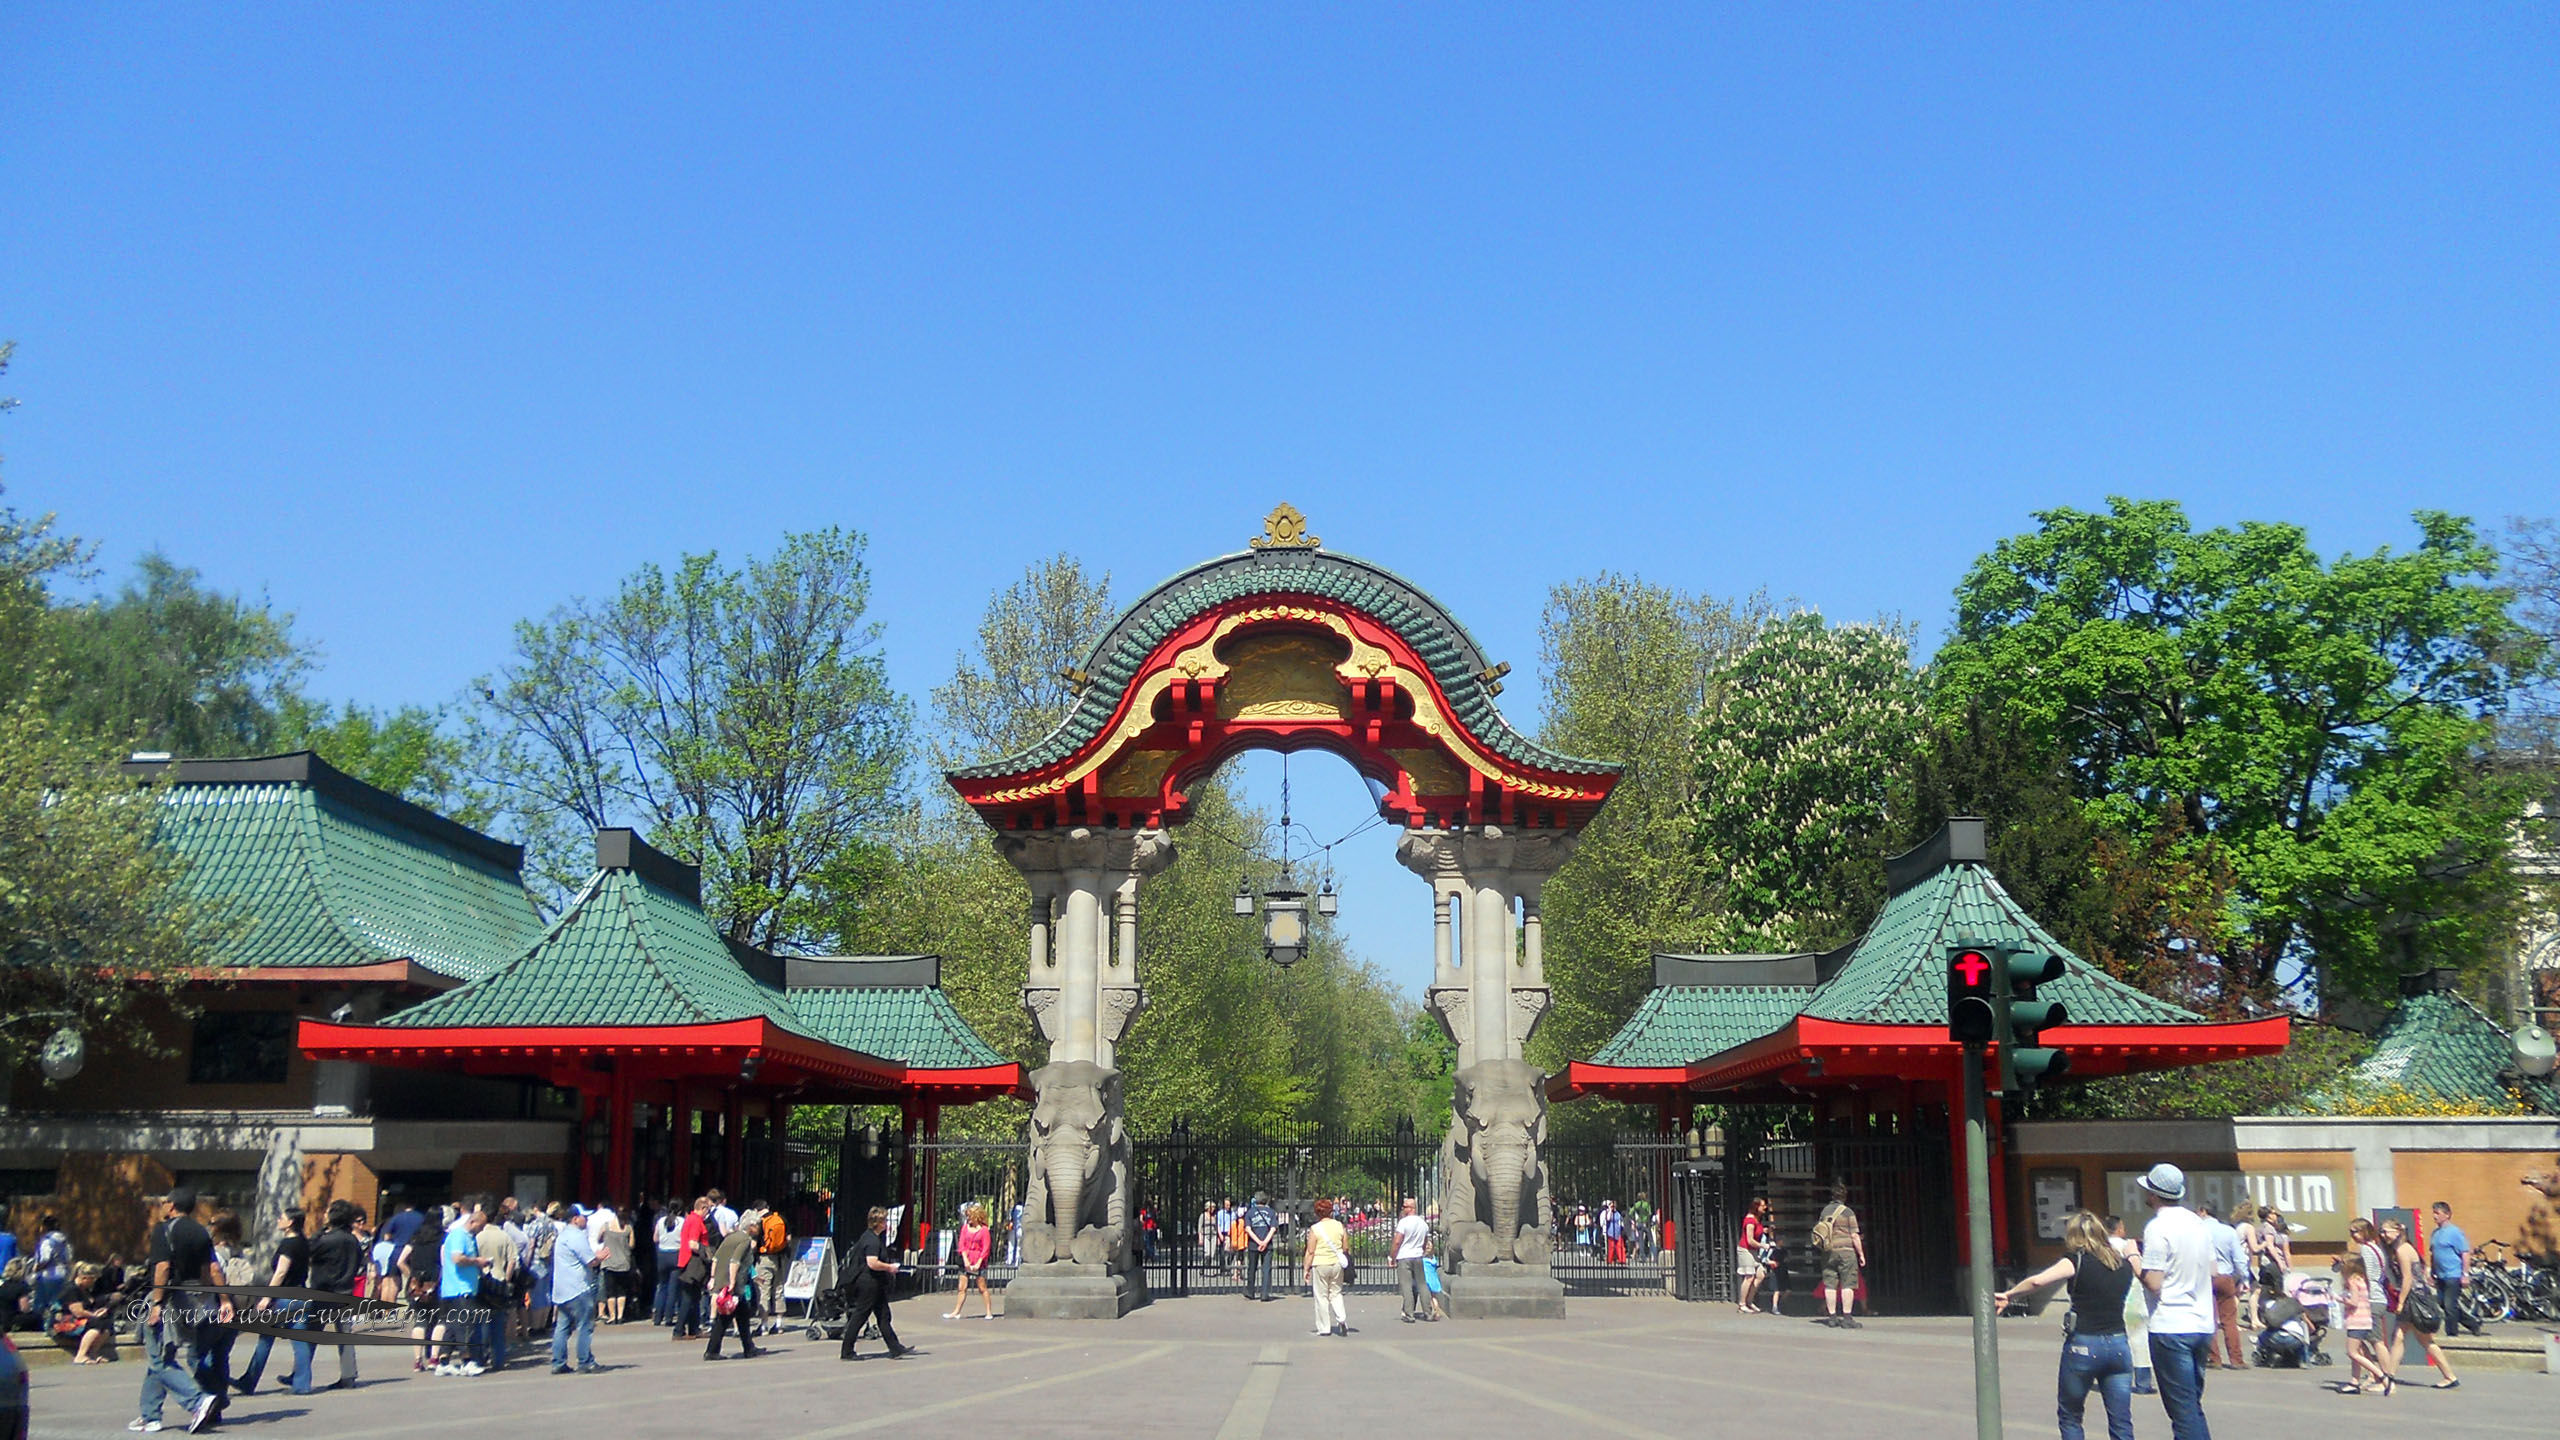 The Zoologischer Garten in Berlin is the oldest zoo in Germany and the largest in the world.